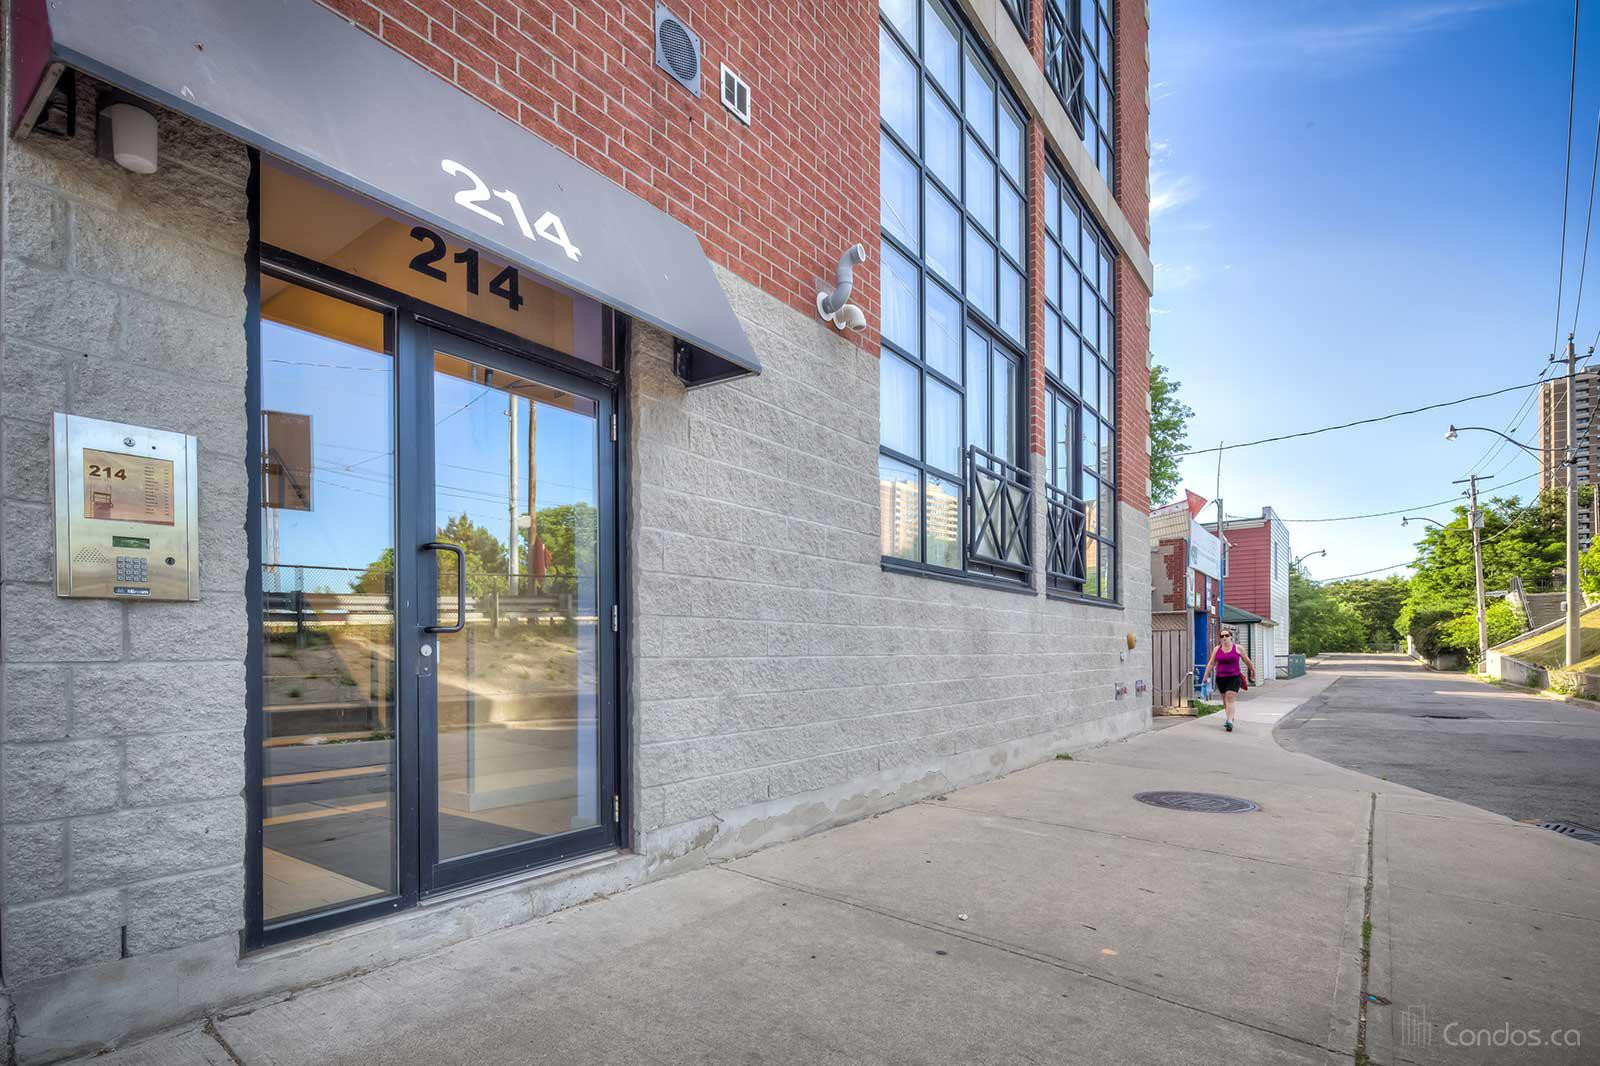 Upper Beaches Lofts at 214 Main St, Toronto 1